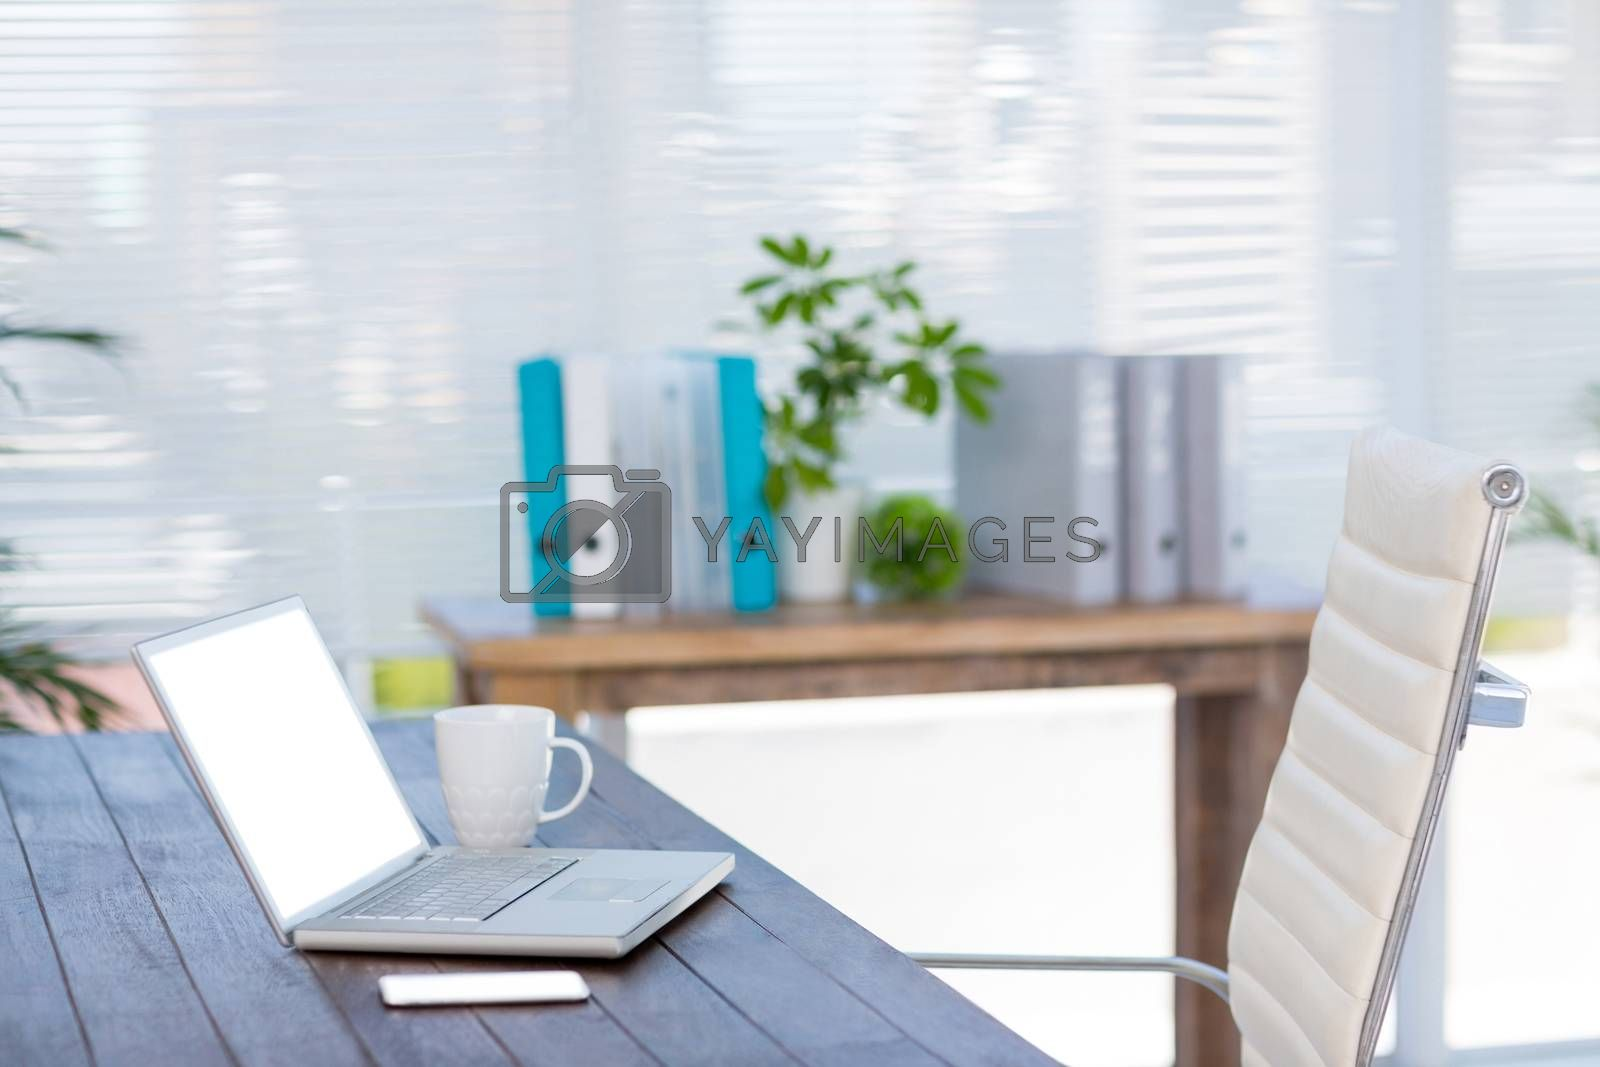 Royalty free image of Business desk with laptop and smartphone by Wavebreakmedia